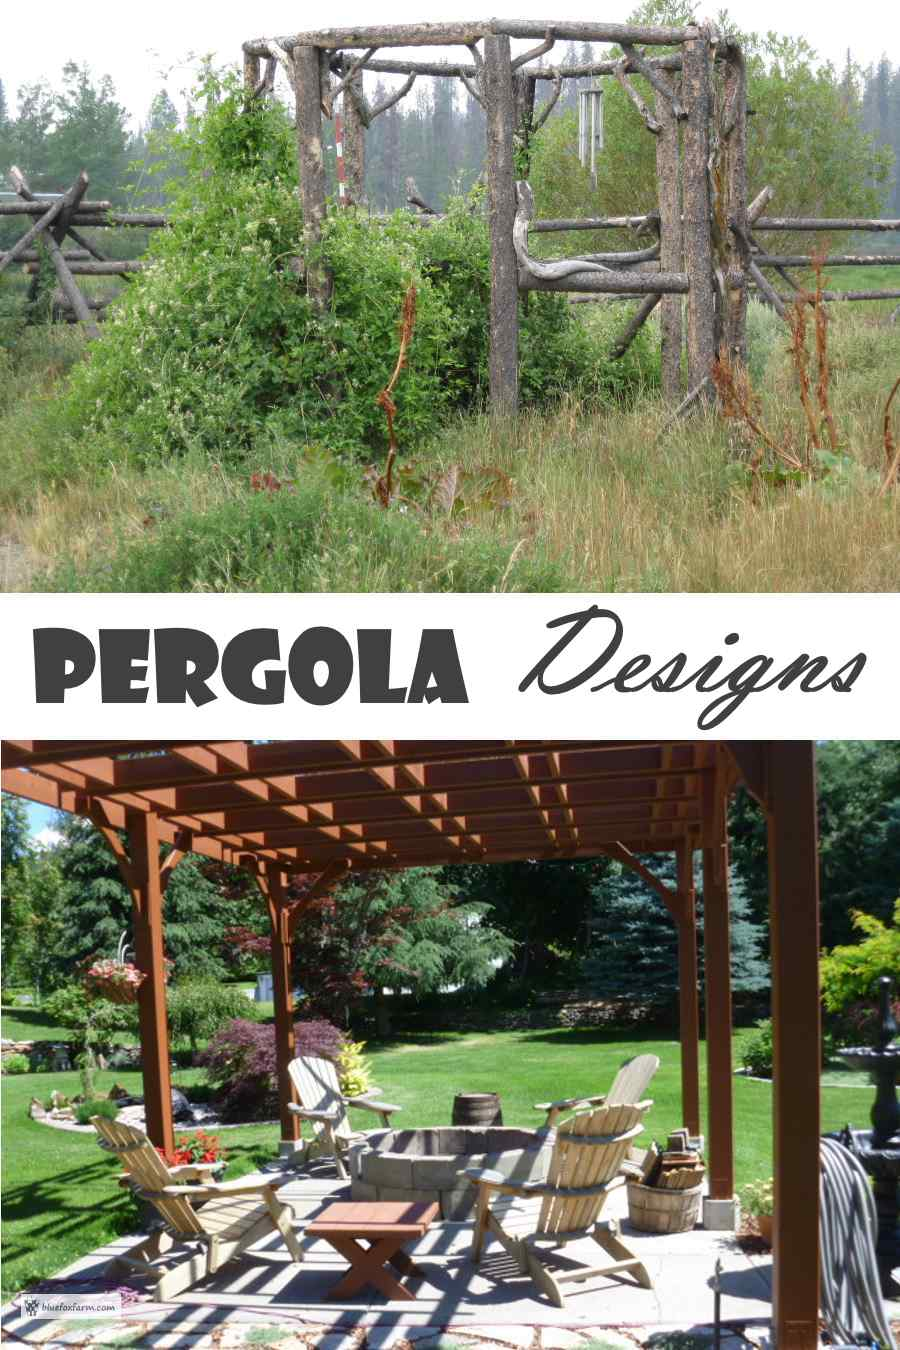 Pergola Designs; get ideas; combine with twigs and rustic; create on garden portico designs, garden irrigation designs, gazebo designs, garden landscape designs, garden gates designs, garden tap designs, french garden drawing designs, garden restaurant designs, garden barn designs, garden greenhouse designs, garden designs for small spaces, garden flowers designs, patio designs, garden terrace designs, garden stairs designs, fire pit designs, garden statues and ornaments, garden fireplace designs, garden barrel designs, garden trellis,